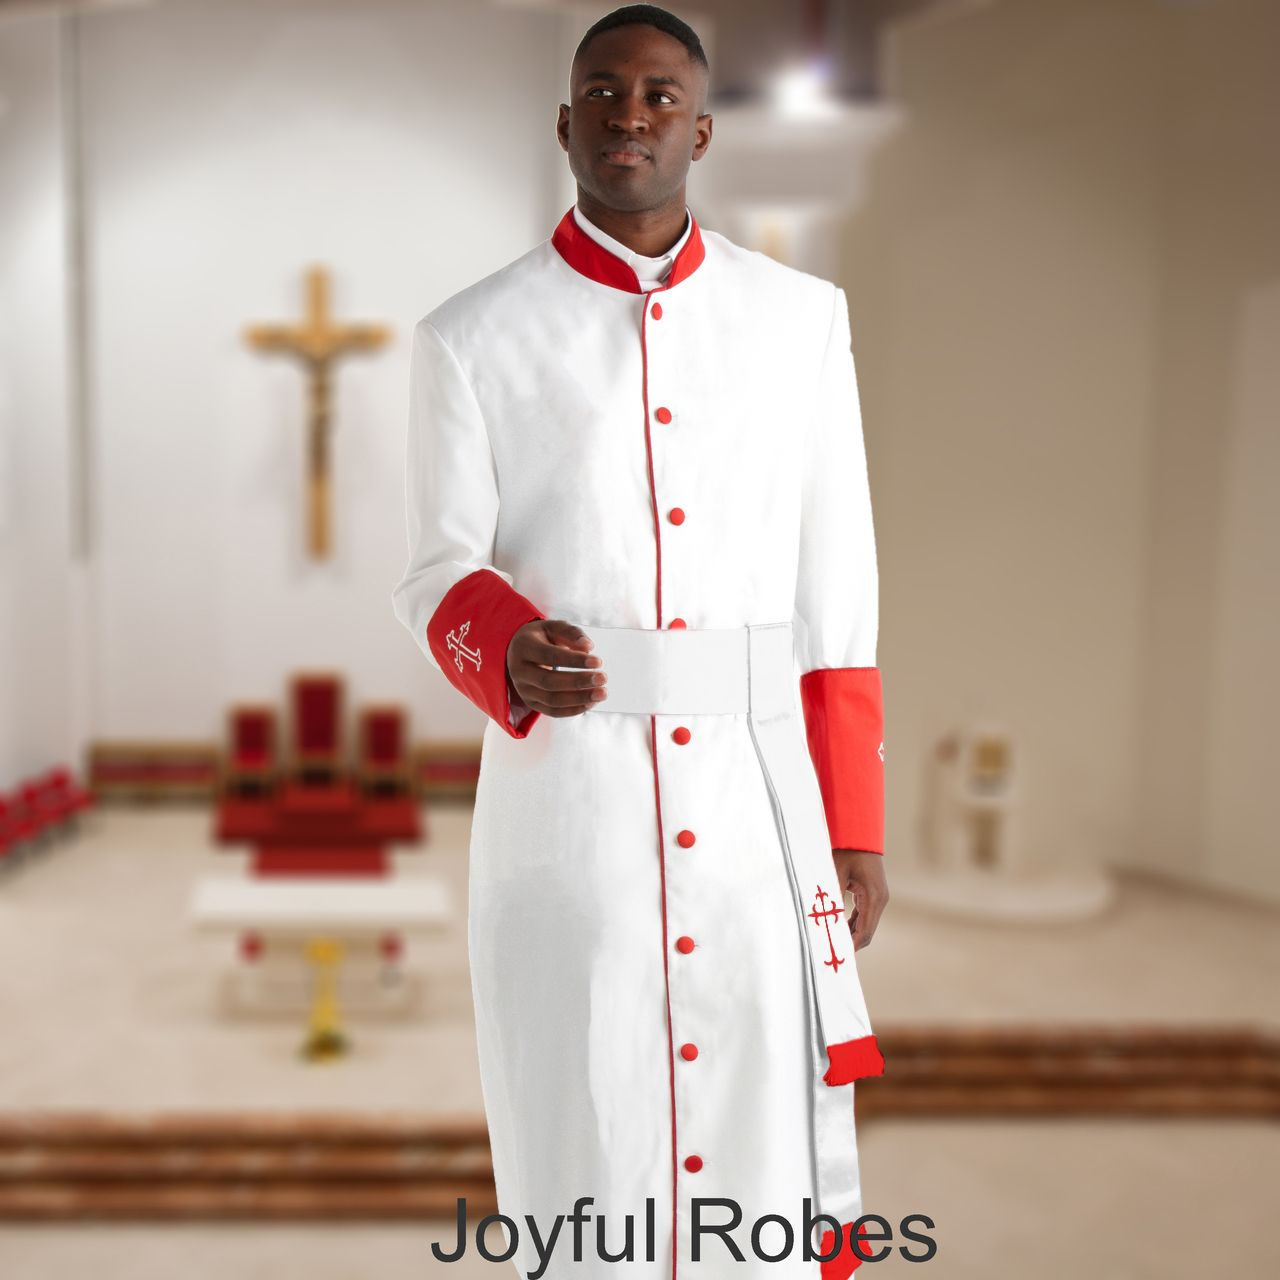 355 M. Men's Pastor/Clergy Robe - White/Red Cuff Matching Cincture Set